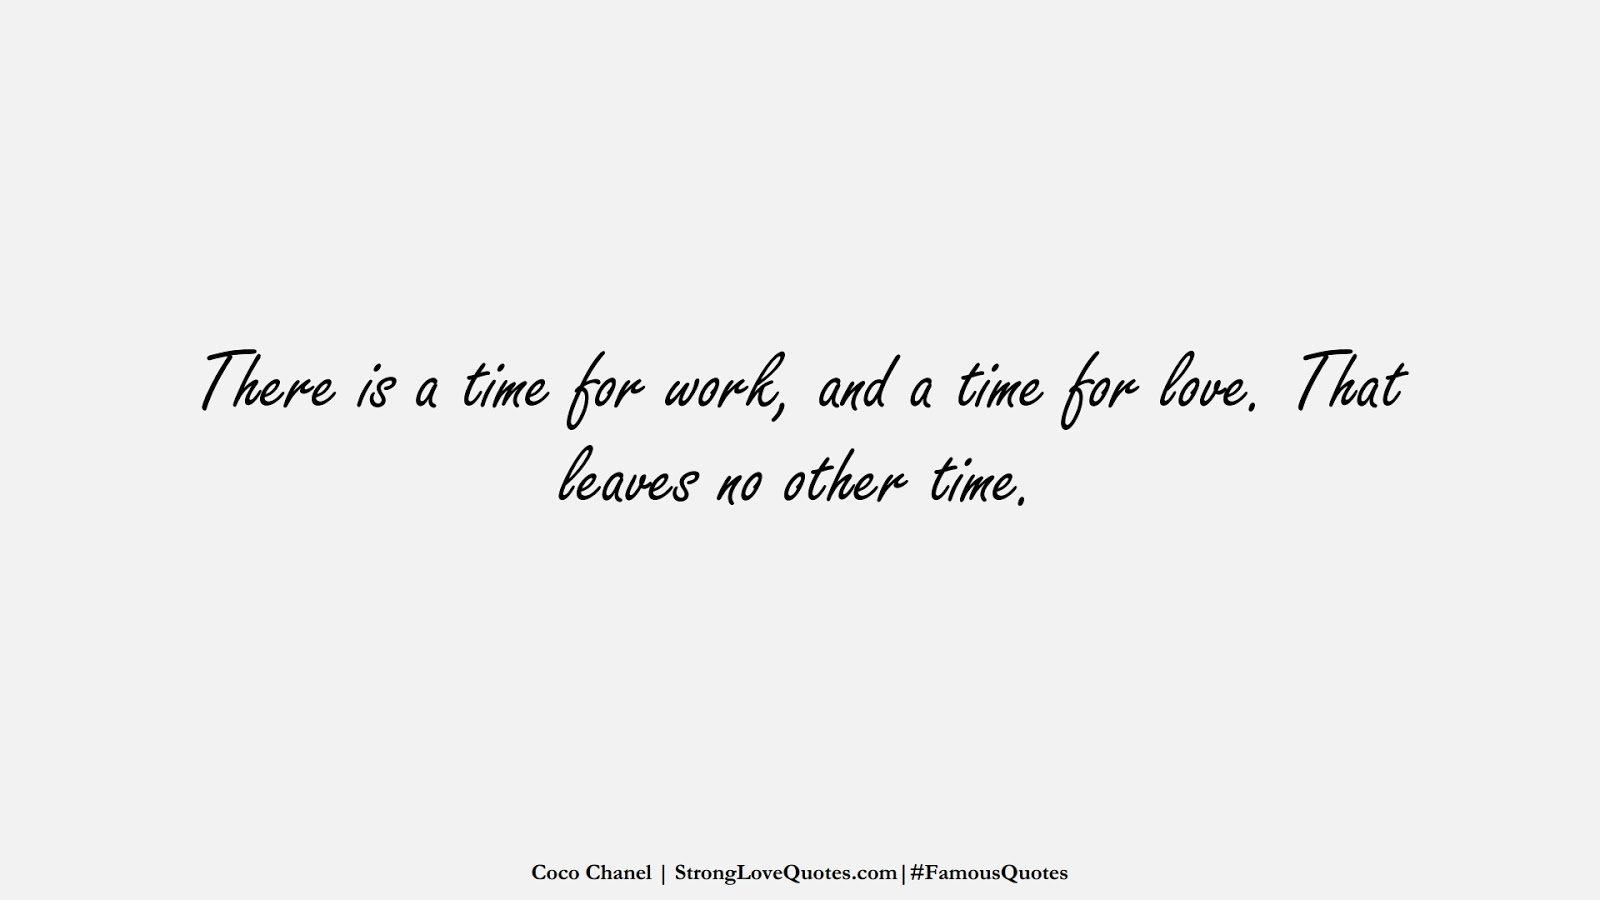 There is a time for work, and a time for love. That leaves no other time. (Coco Chanel);  #FamousQuotes